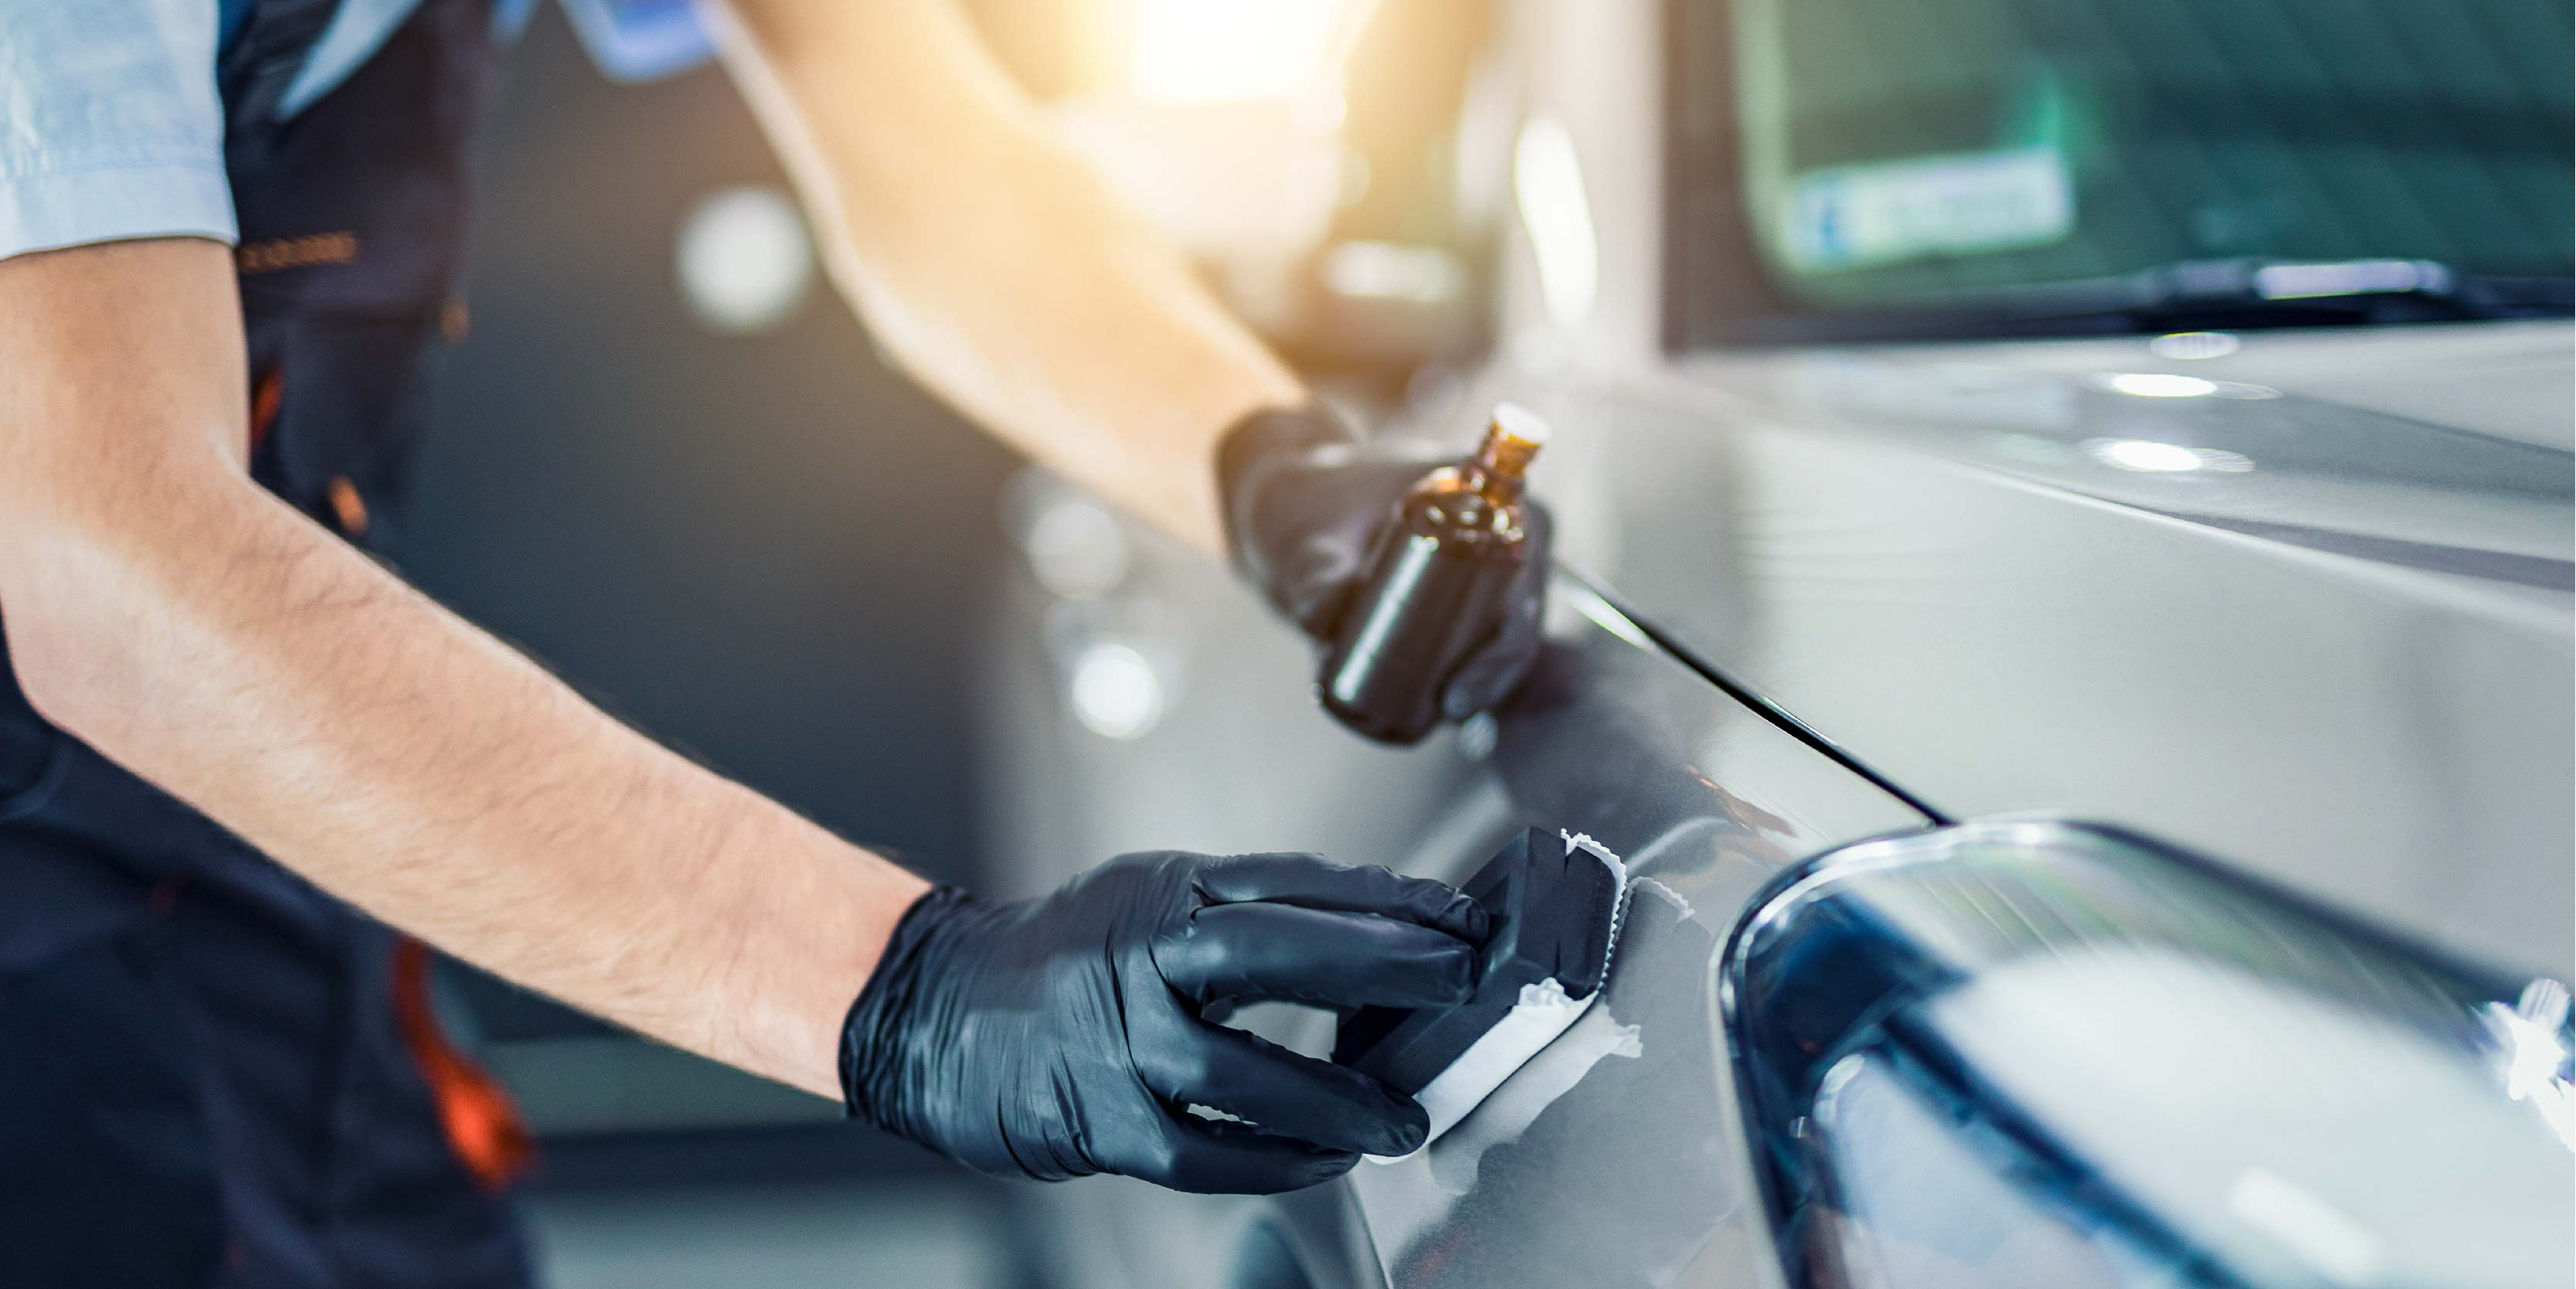 diy car detailing: 6 simple steps to shine your car